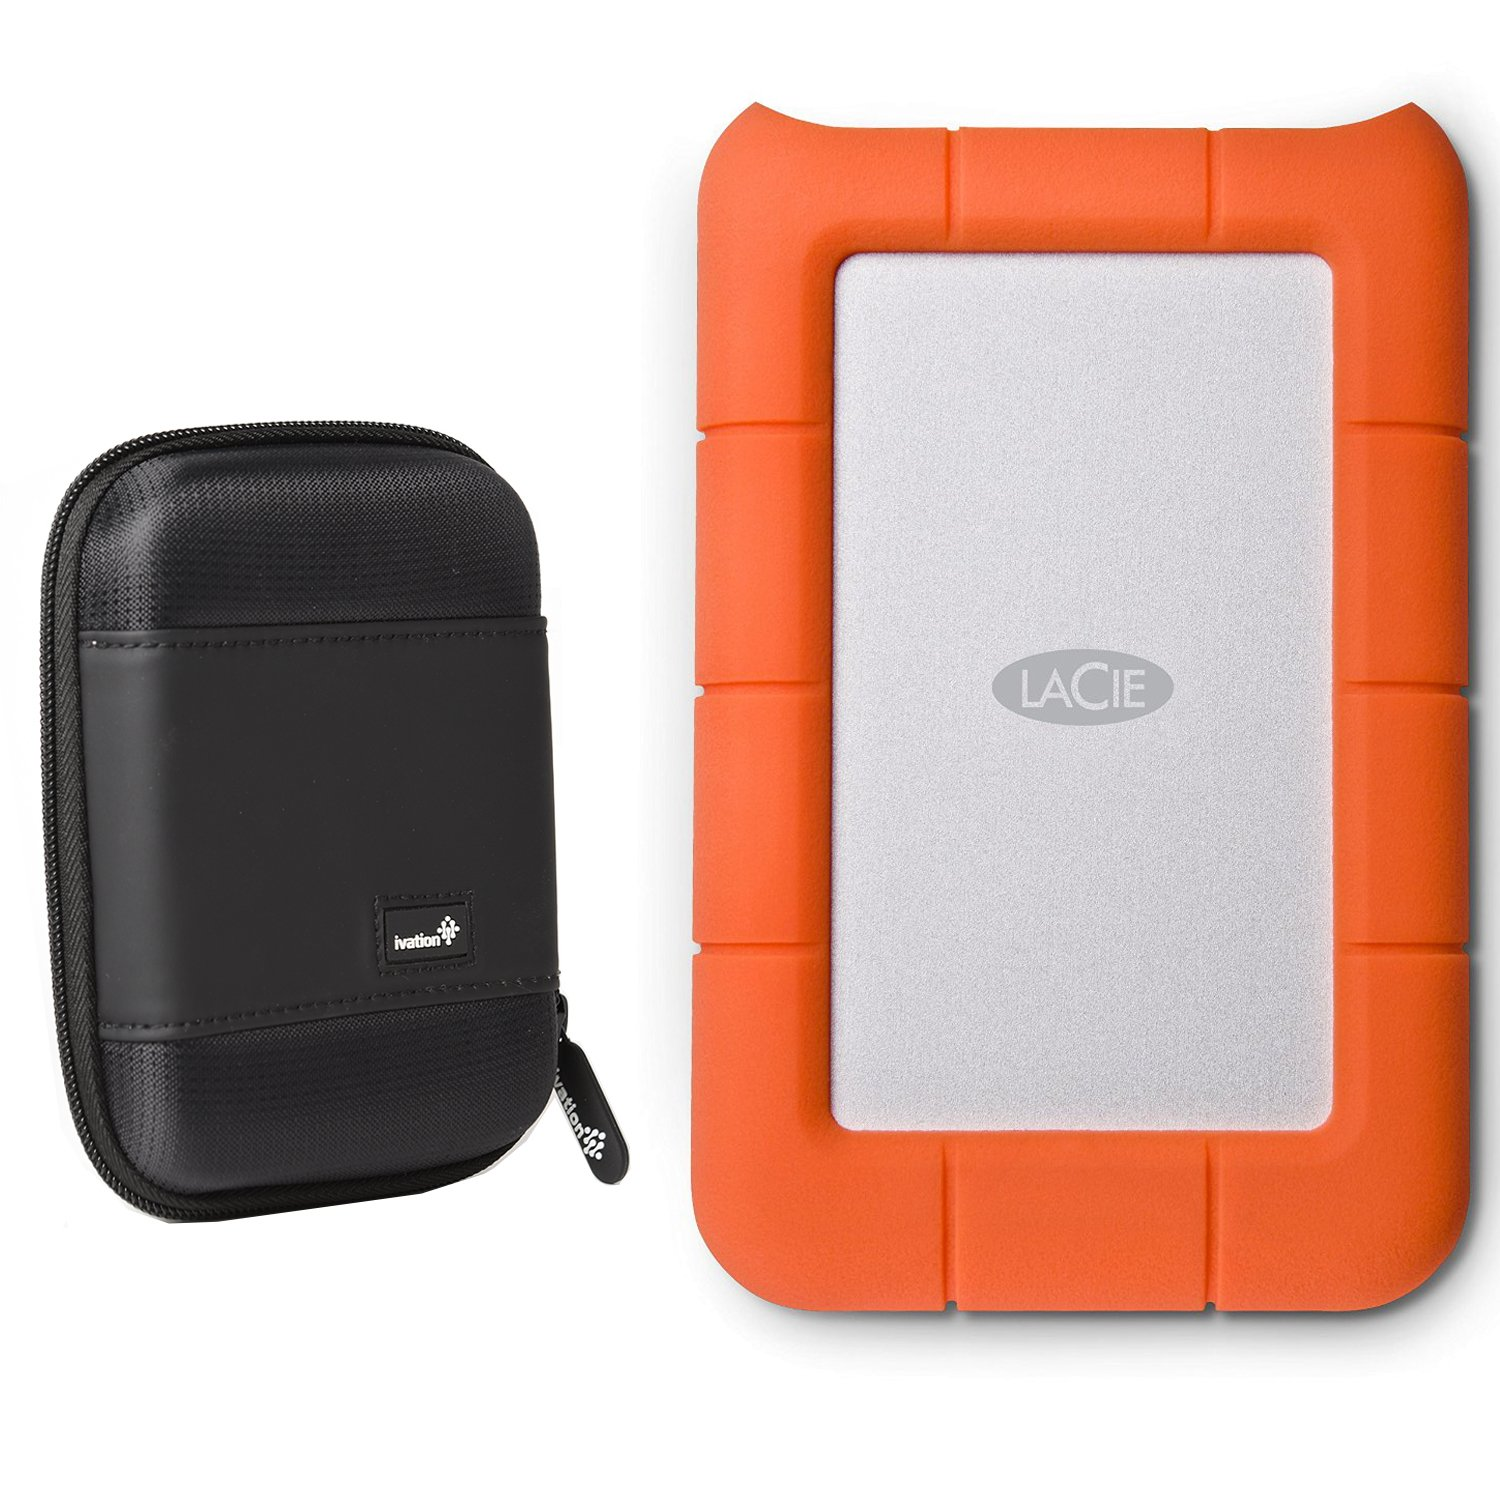 LaCie Rugged Mini USB 3.0 / USB 2.0 4TB External Hard Drive (LAC9000633) With Ivation Compact Portable Hard Drive Case (Small)